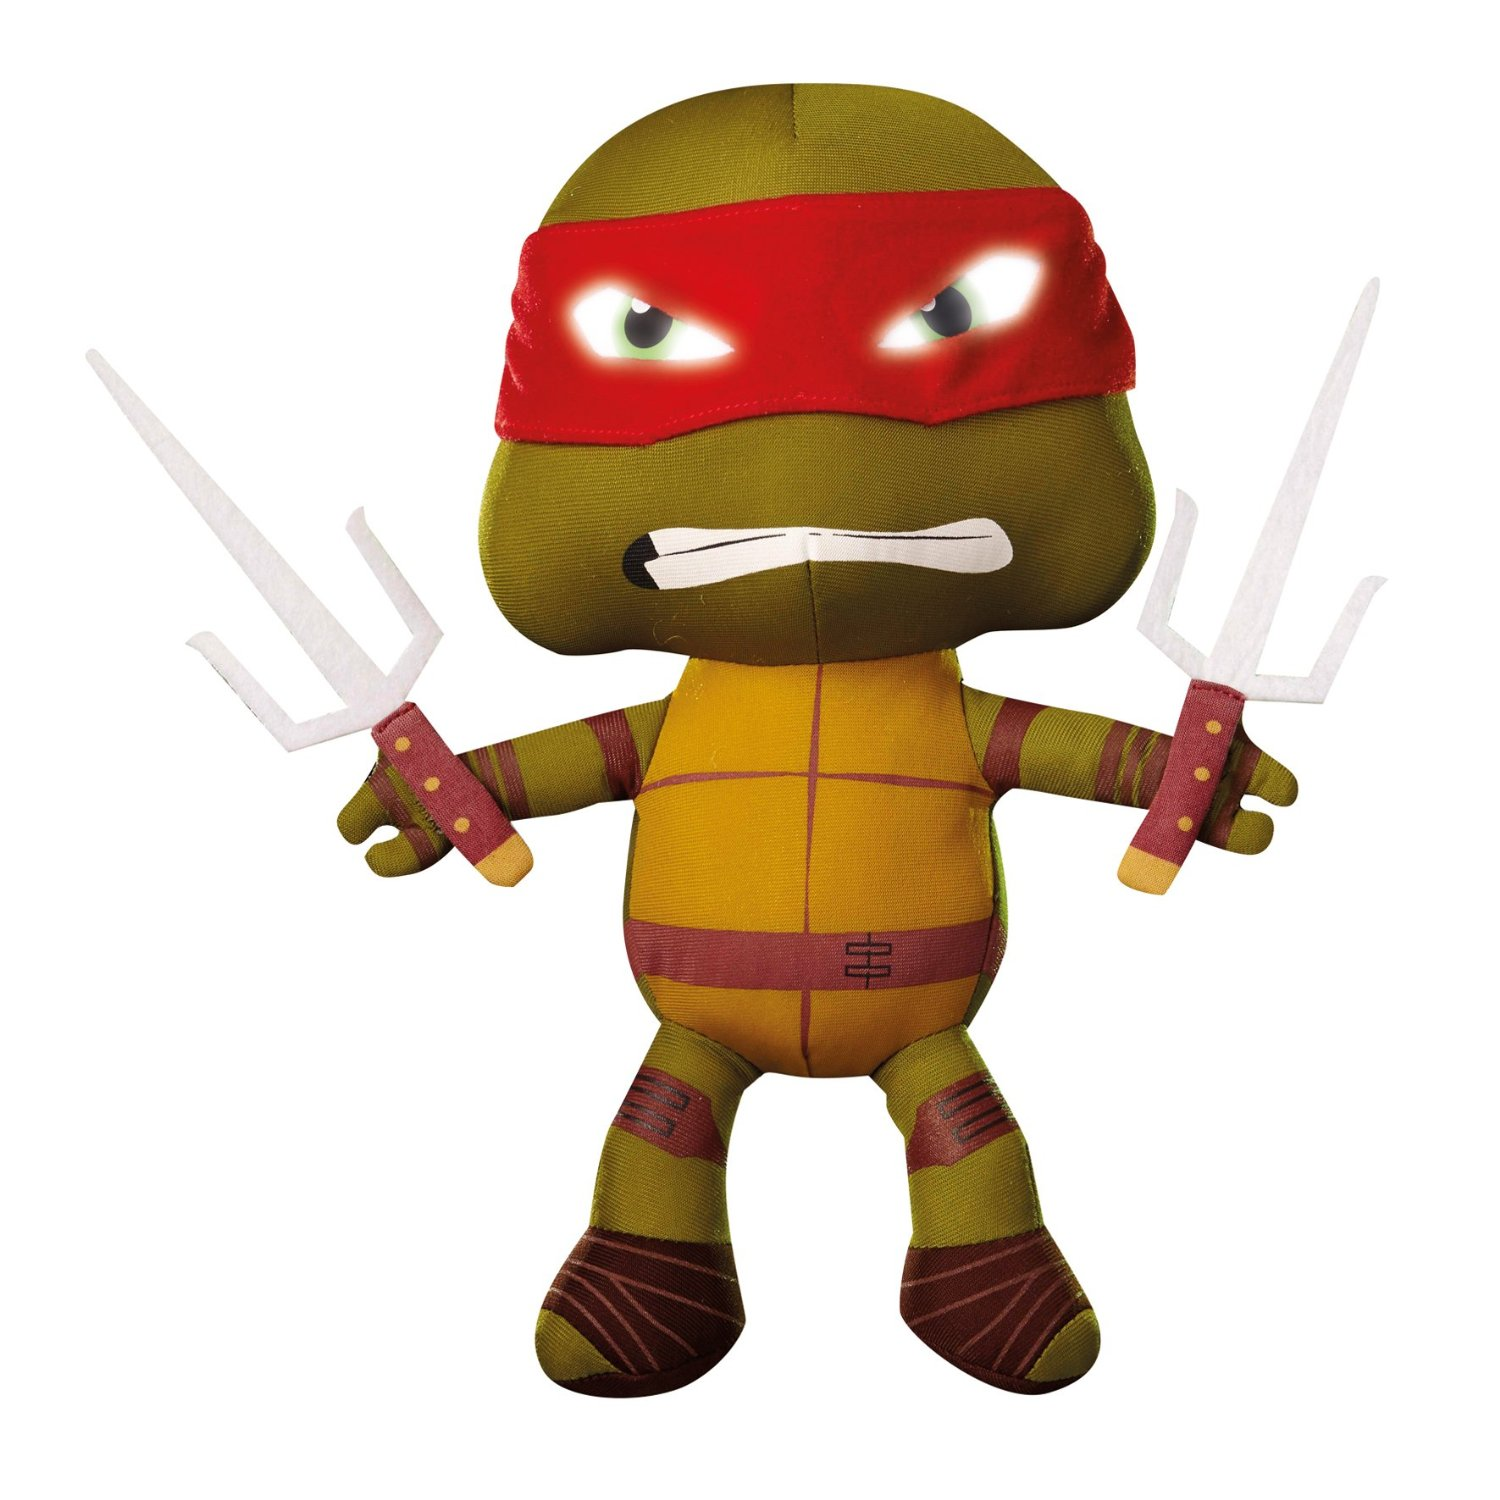 Tortues ninja go glow pal test insert coin for Repere des tortue ninja